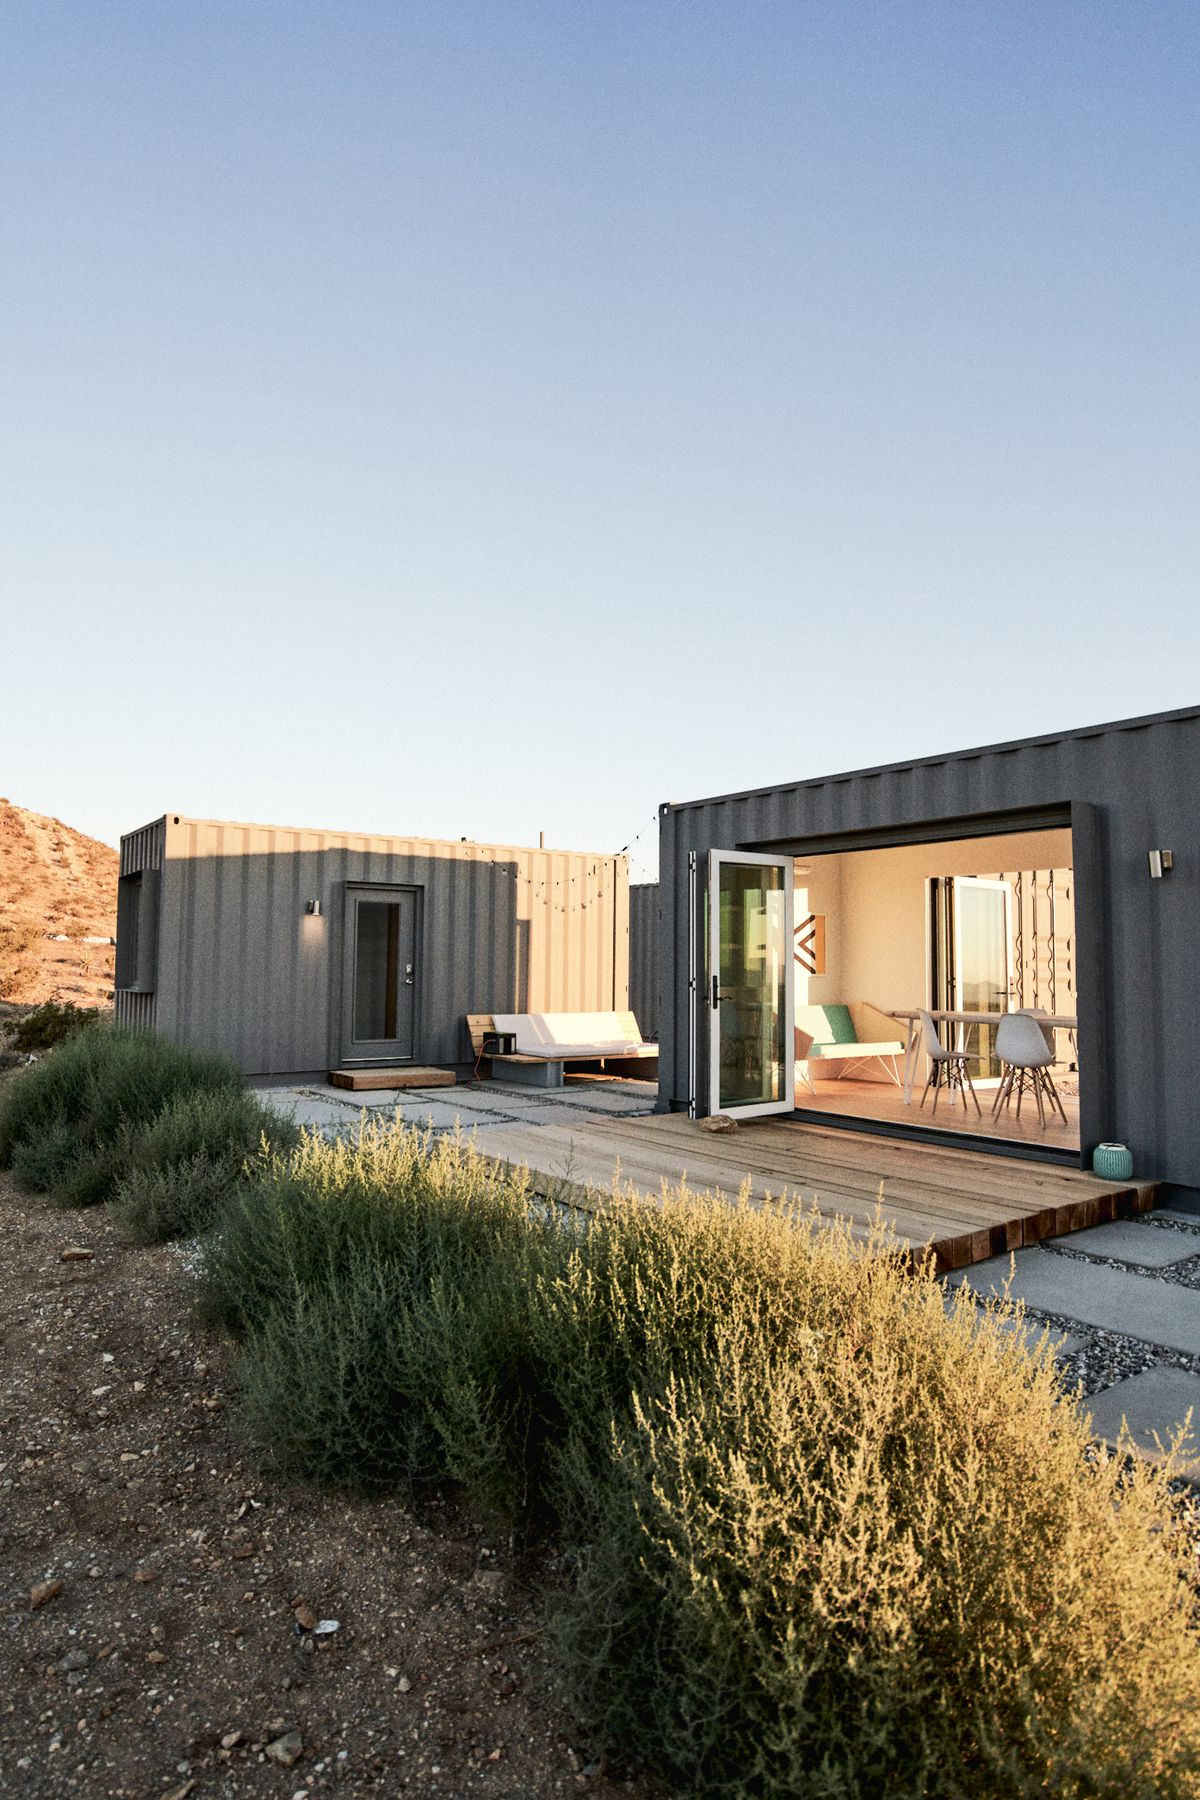 A sunset view of two shipping container houses, one in the background and another with sliding glass doors that open onto a cedar deck.